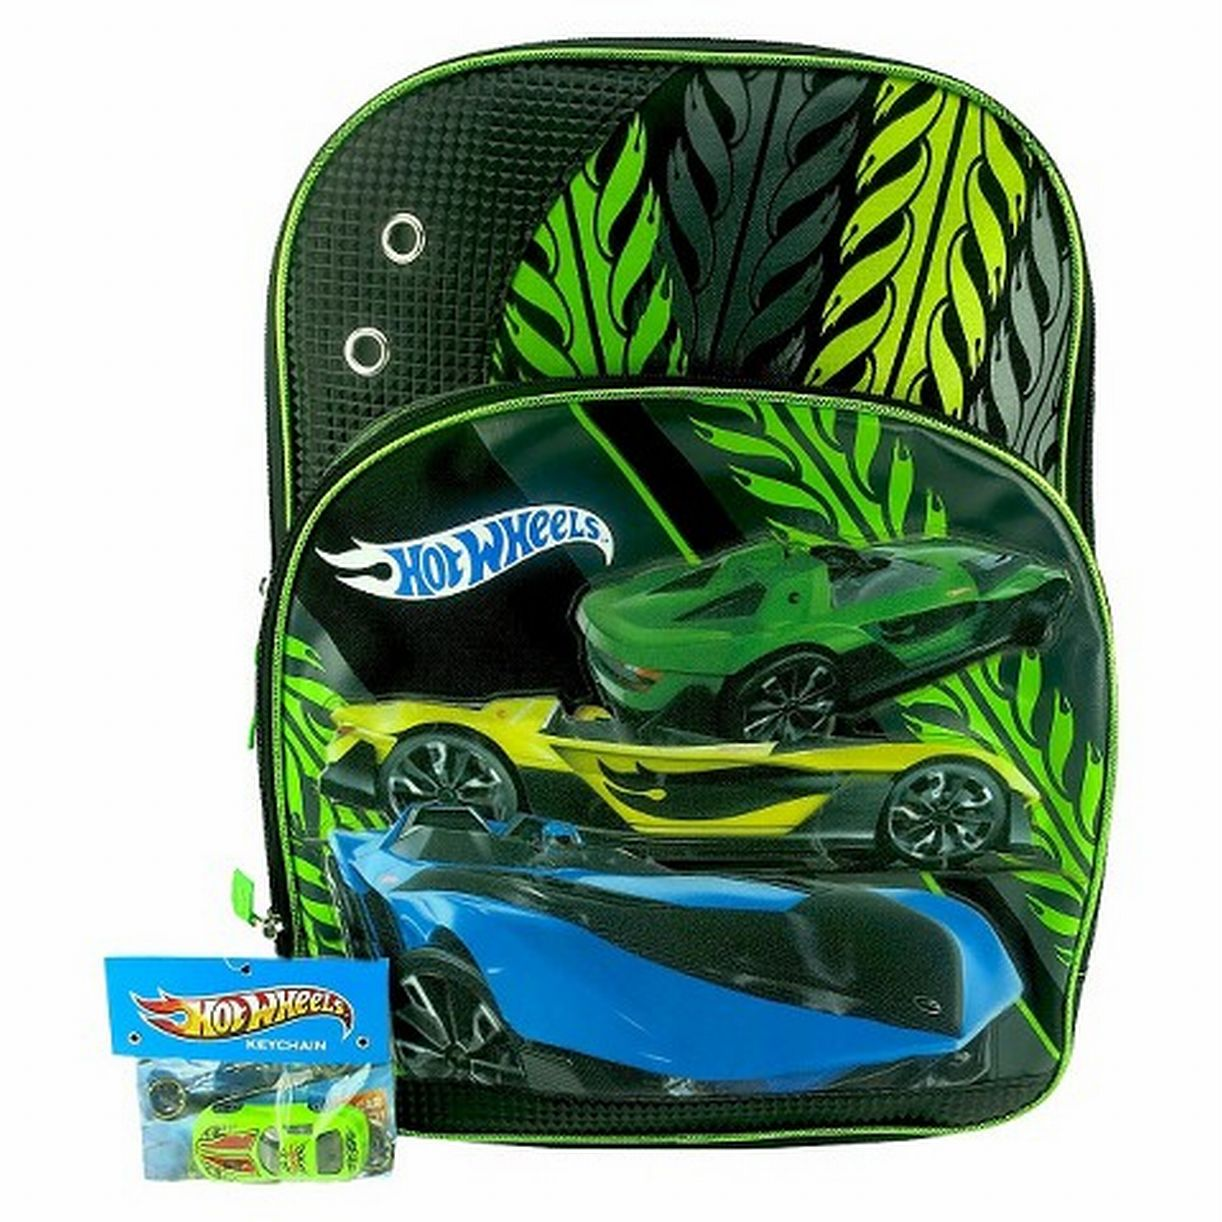 Hot wheels 16 quot racing car backpack with toy car keychain travel school